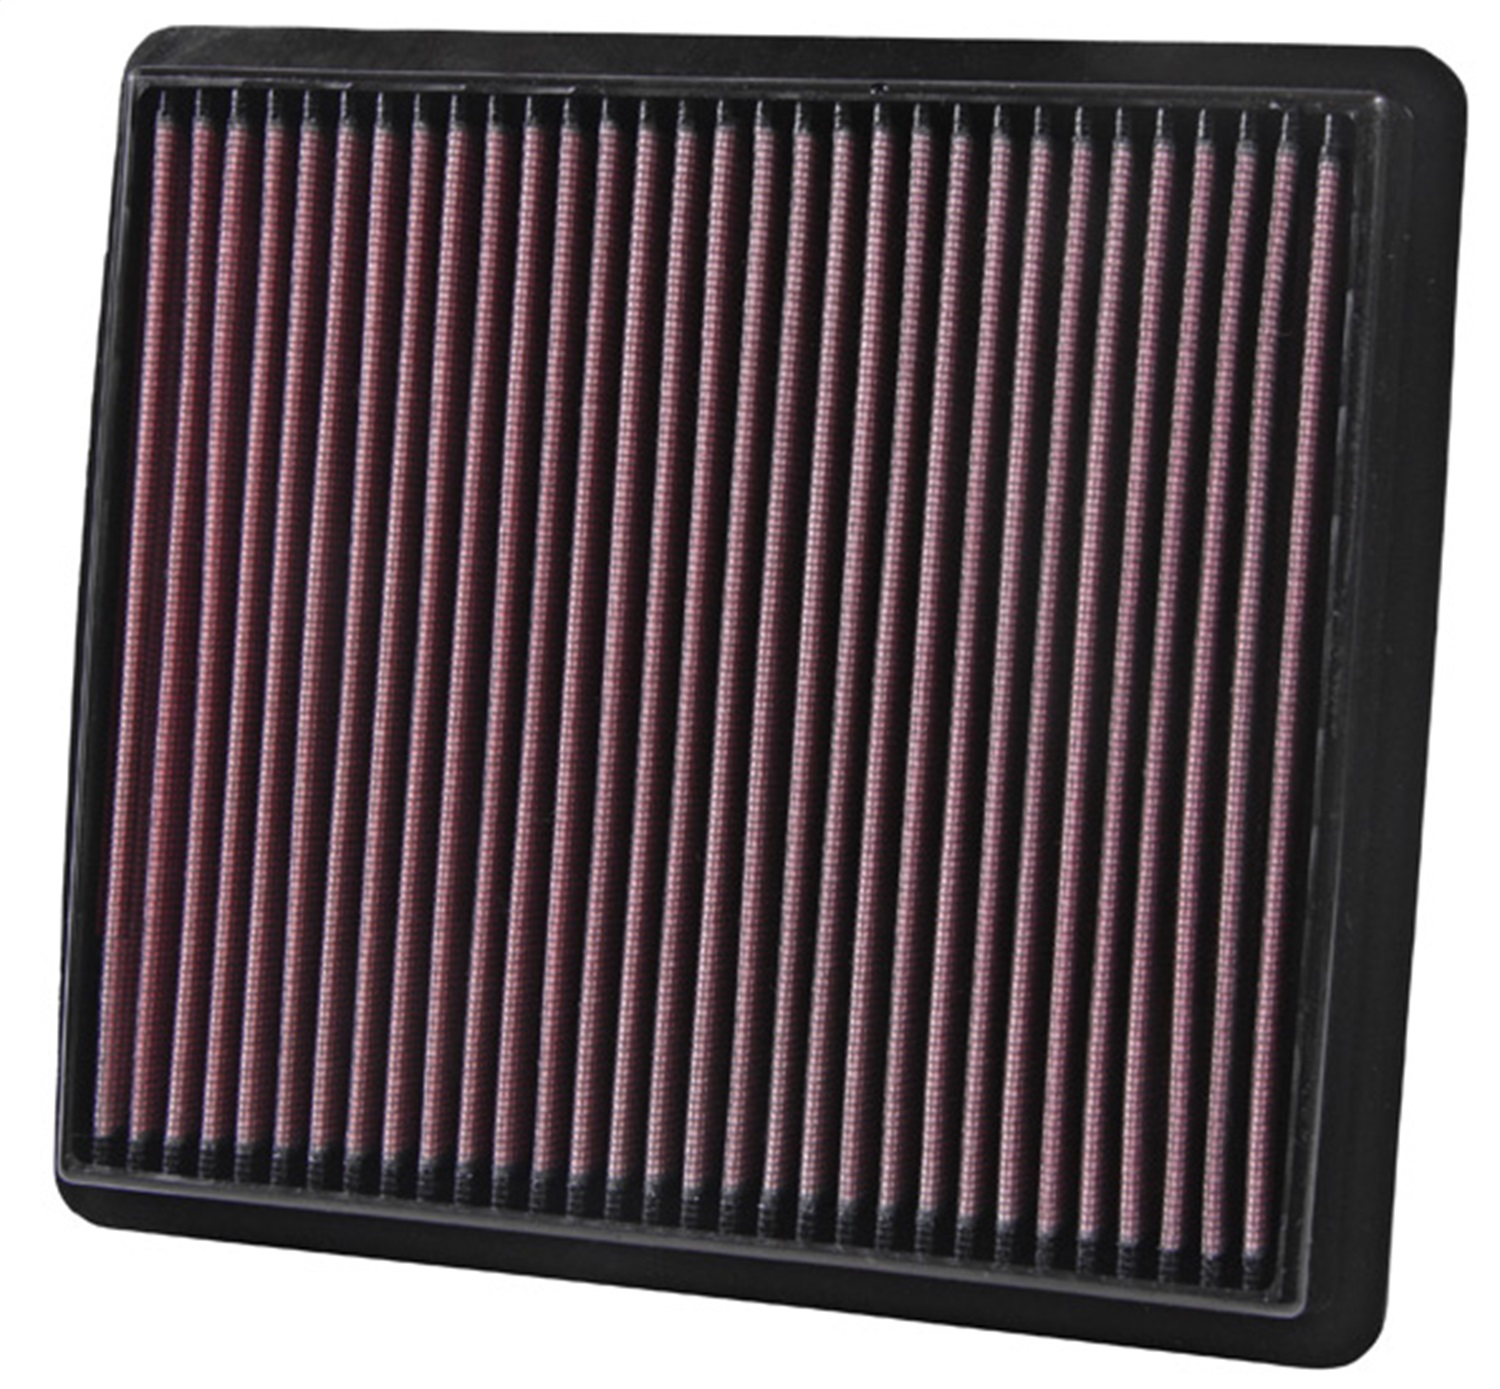 K&N Filters 33-2423 Air Filter Fits 09-14 Journey 33-2423